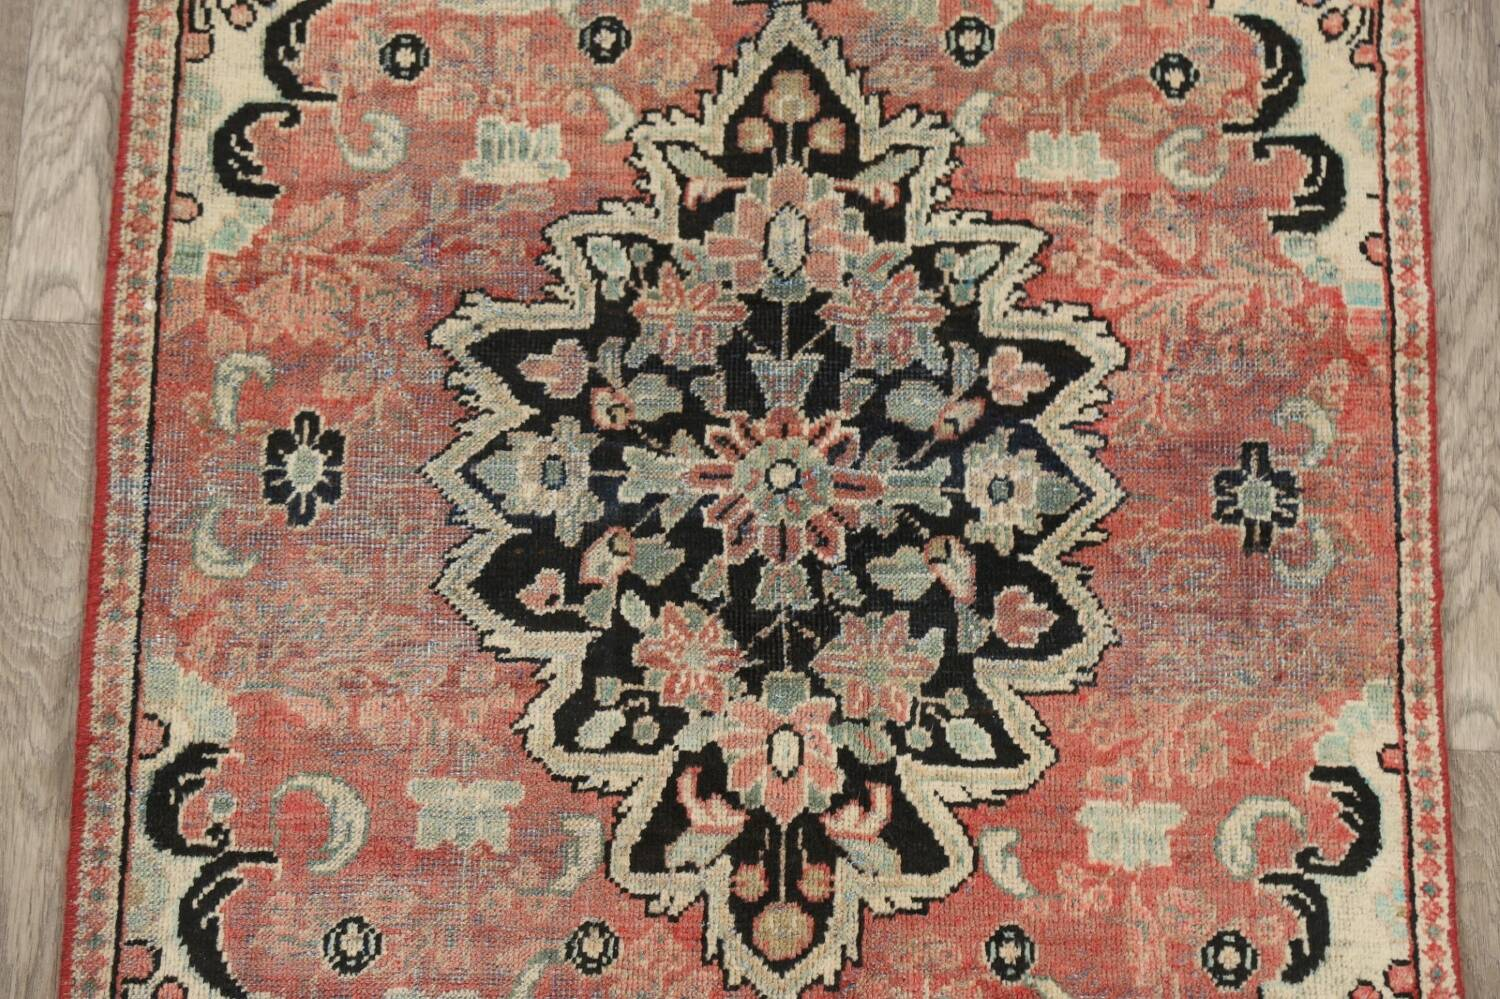 Antique Floral Mahal Persian Area Rug 3x6 image 4